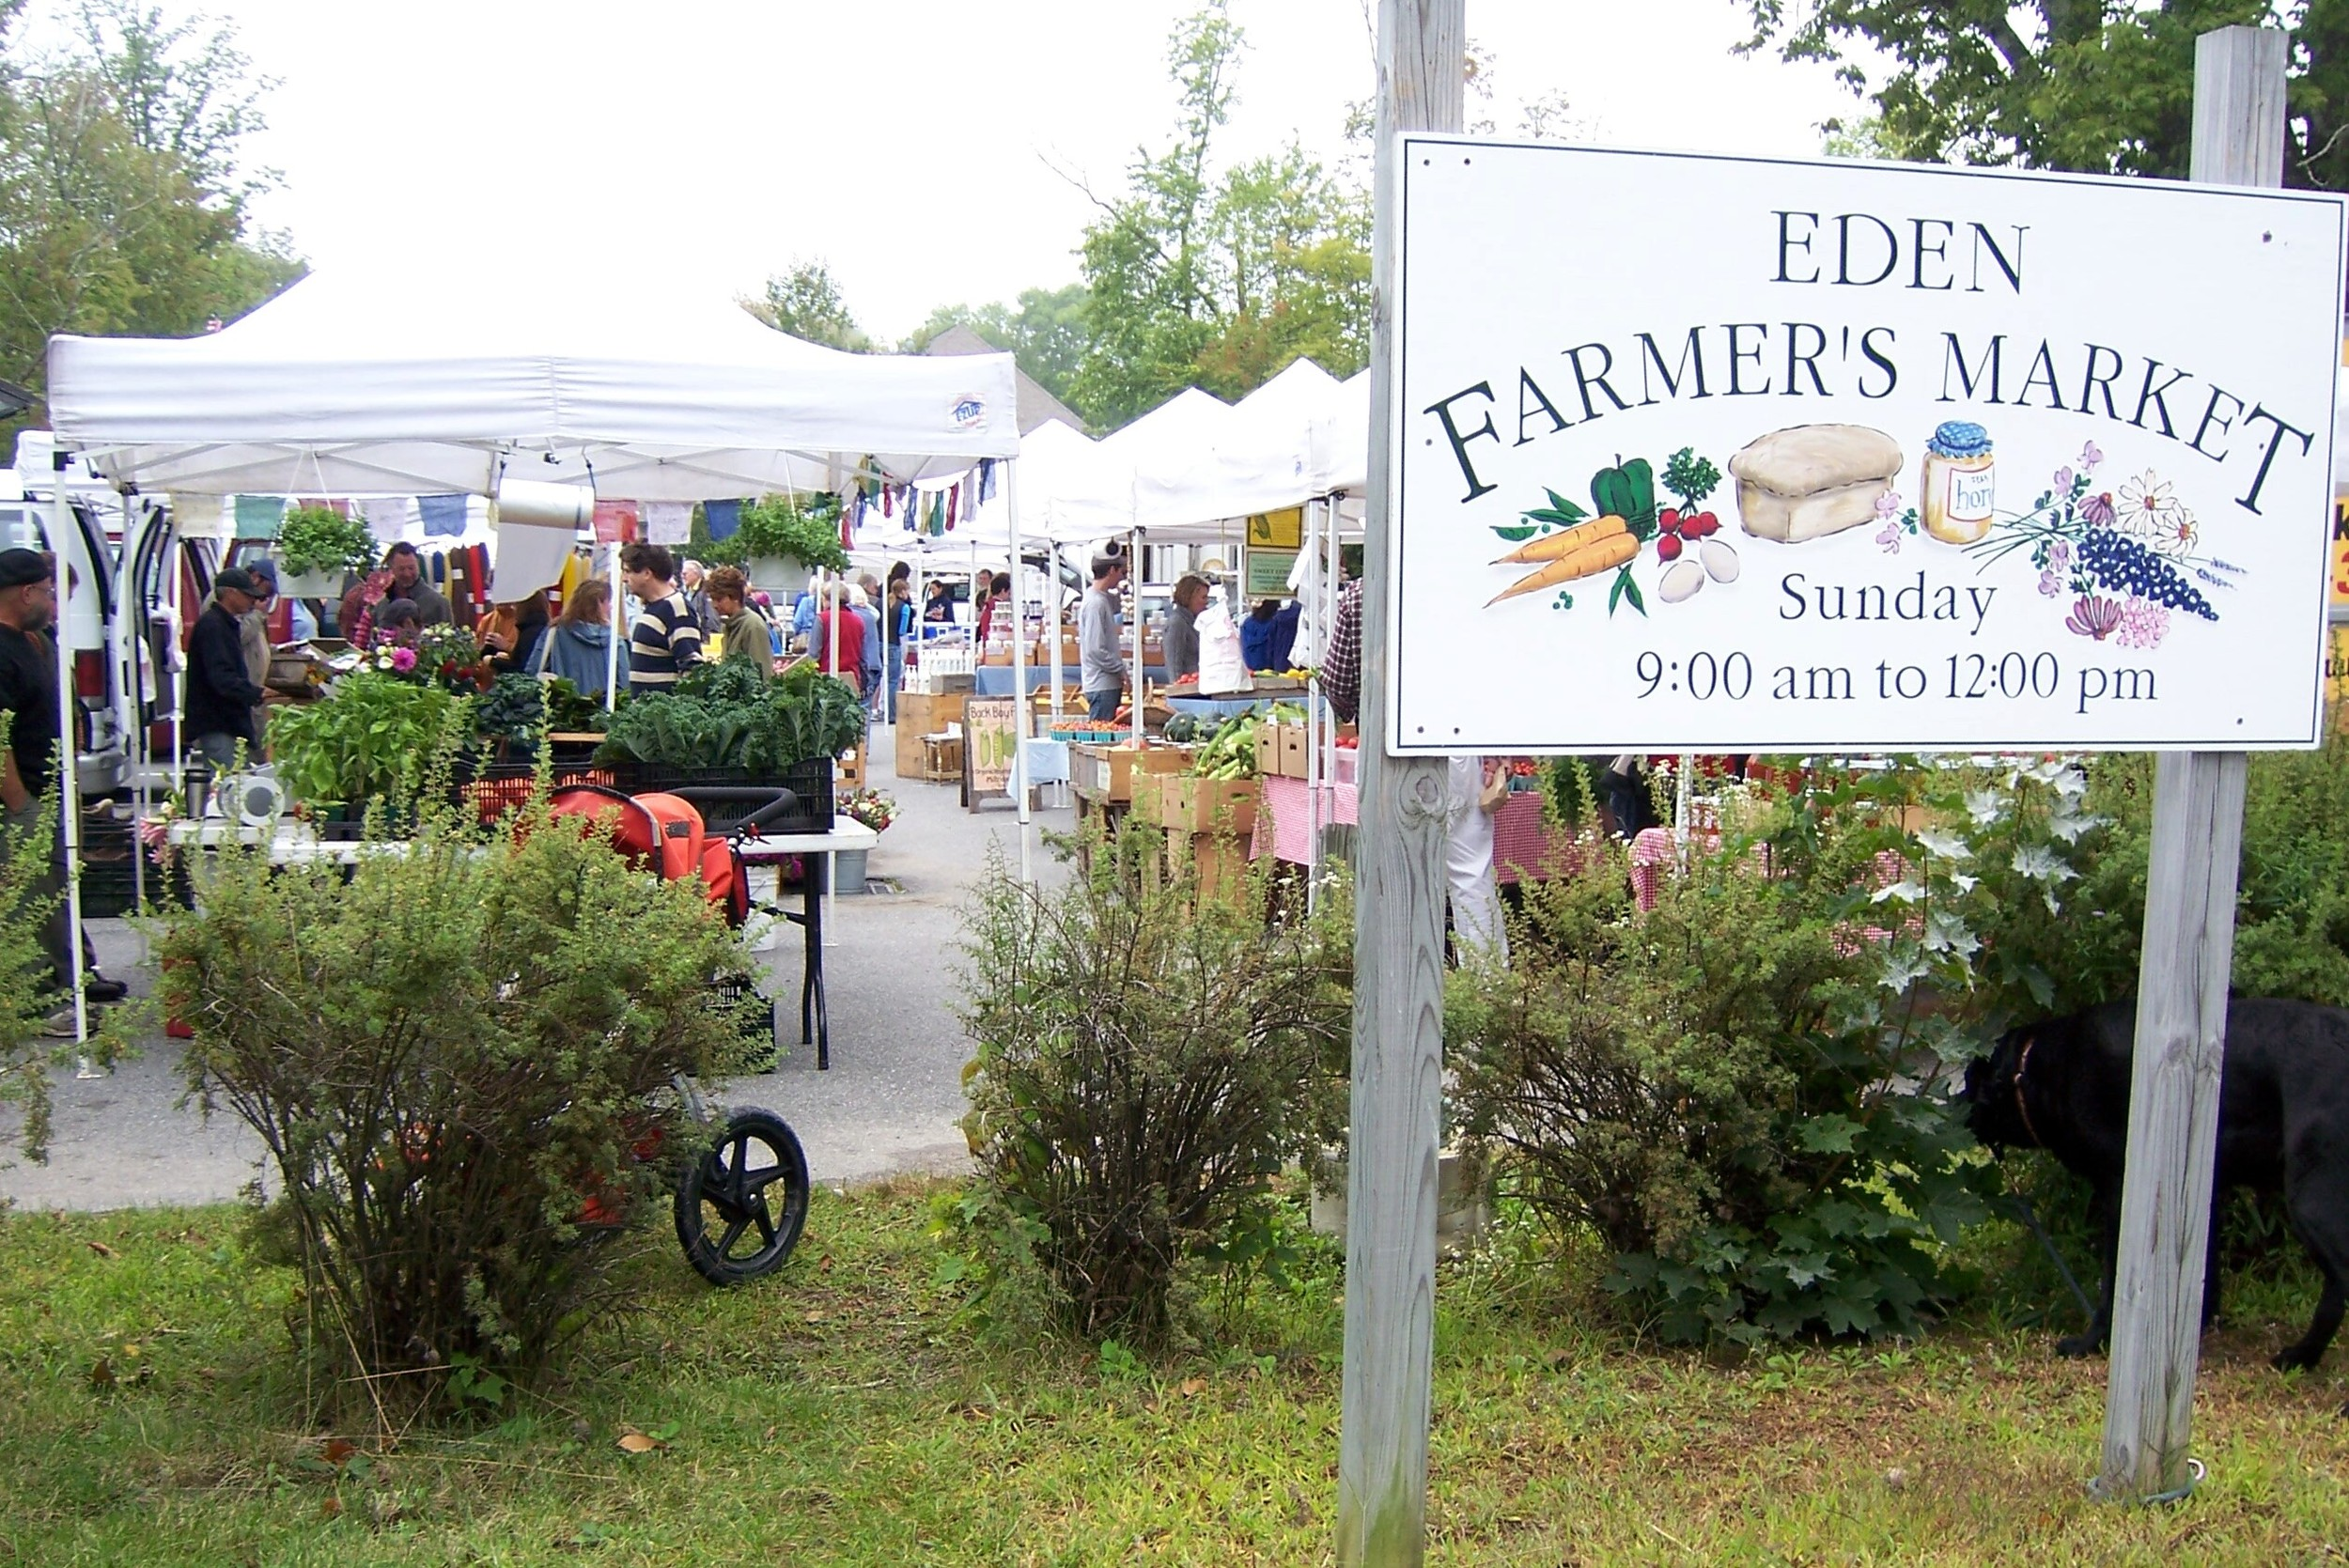 Just minutes away from the island's largest farmers market.